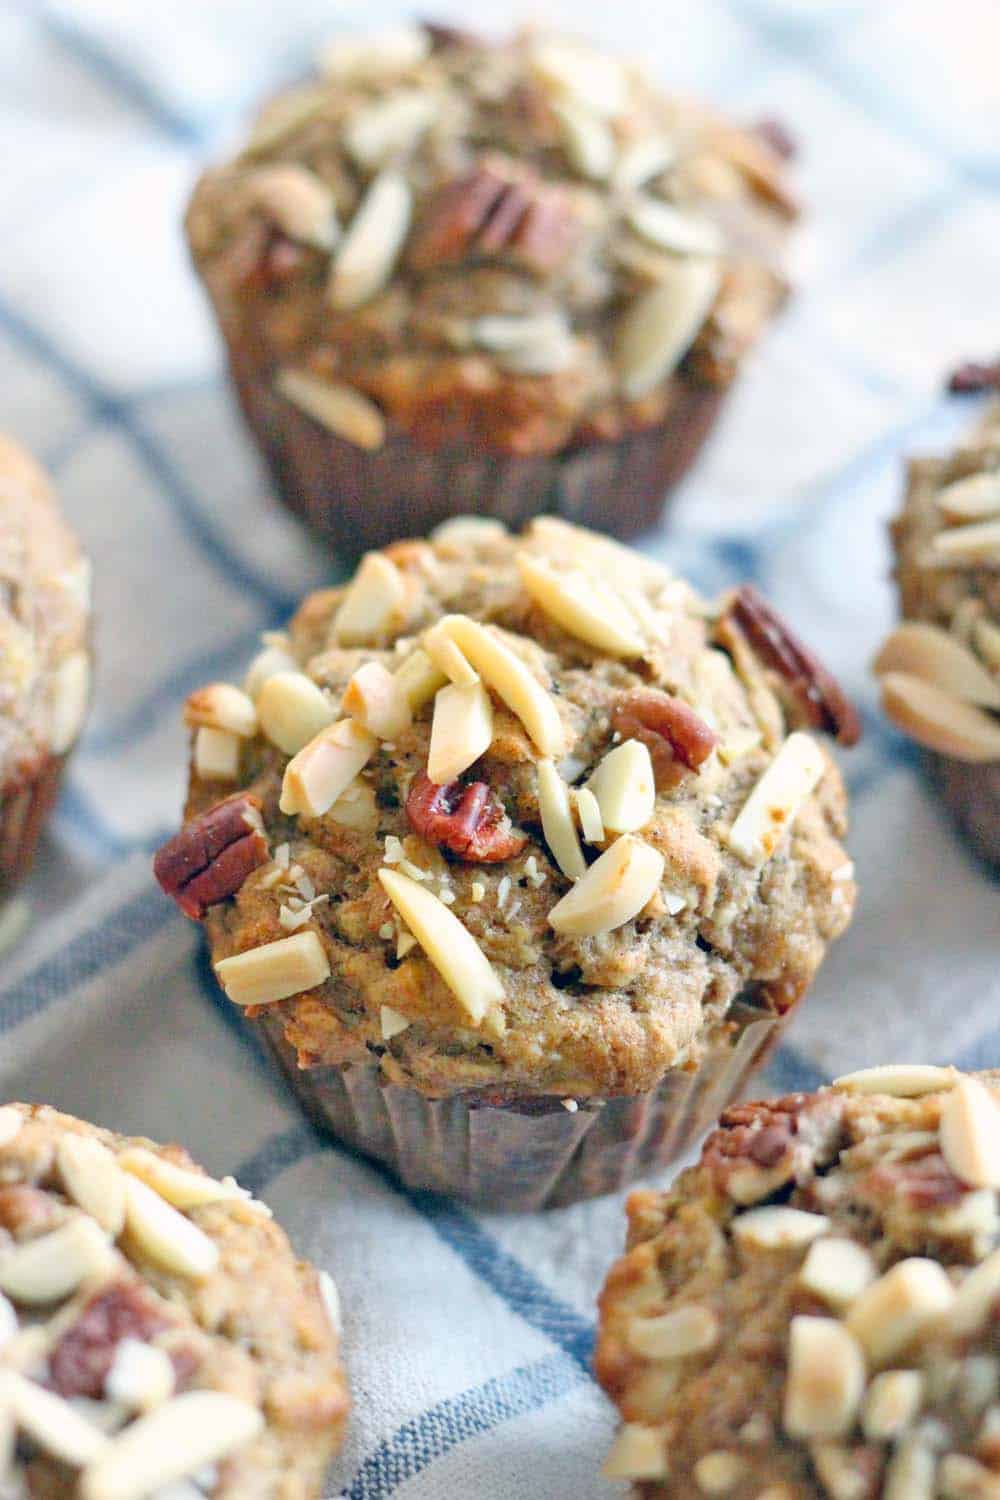 Whole Wheat Banana Oat and Toasted Nut Muffins   These muffins are 100% whole grain and guilt-free, packed full of nuts for protein and banana for natural sweetness. They are moist, delicious, and can be made in bulk and frozen for easy busy morning breakfasts!